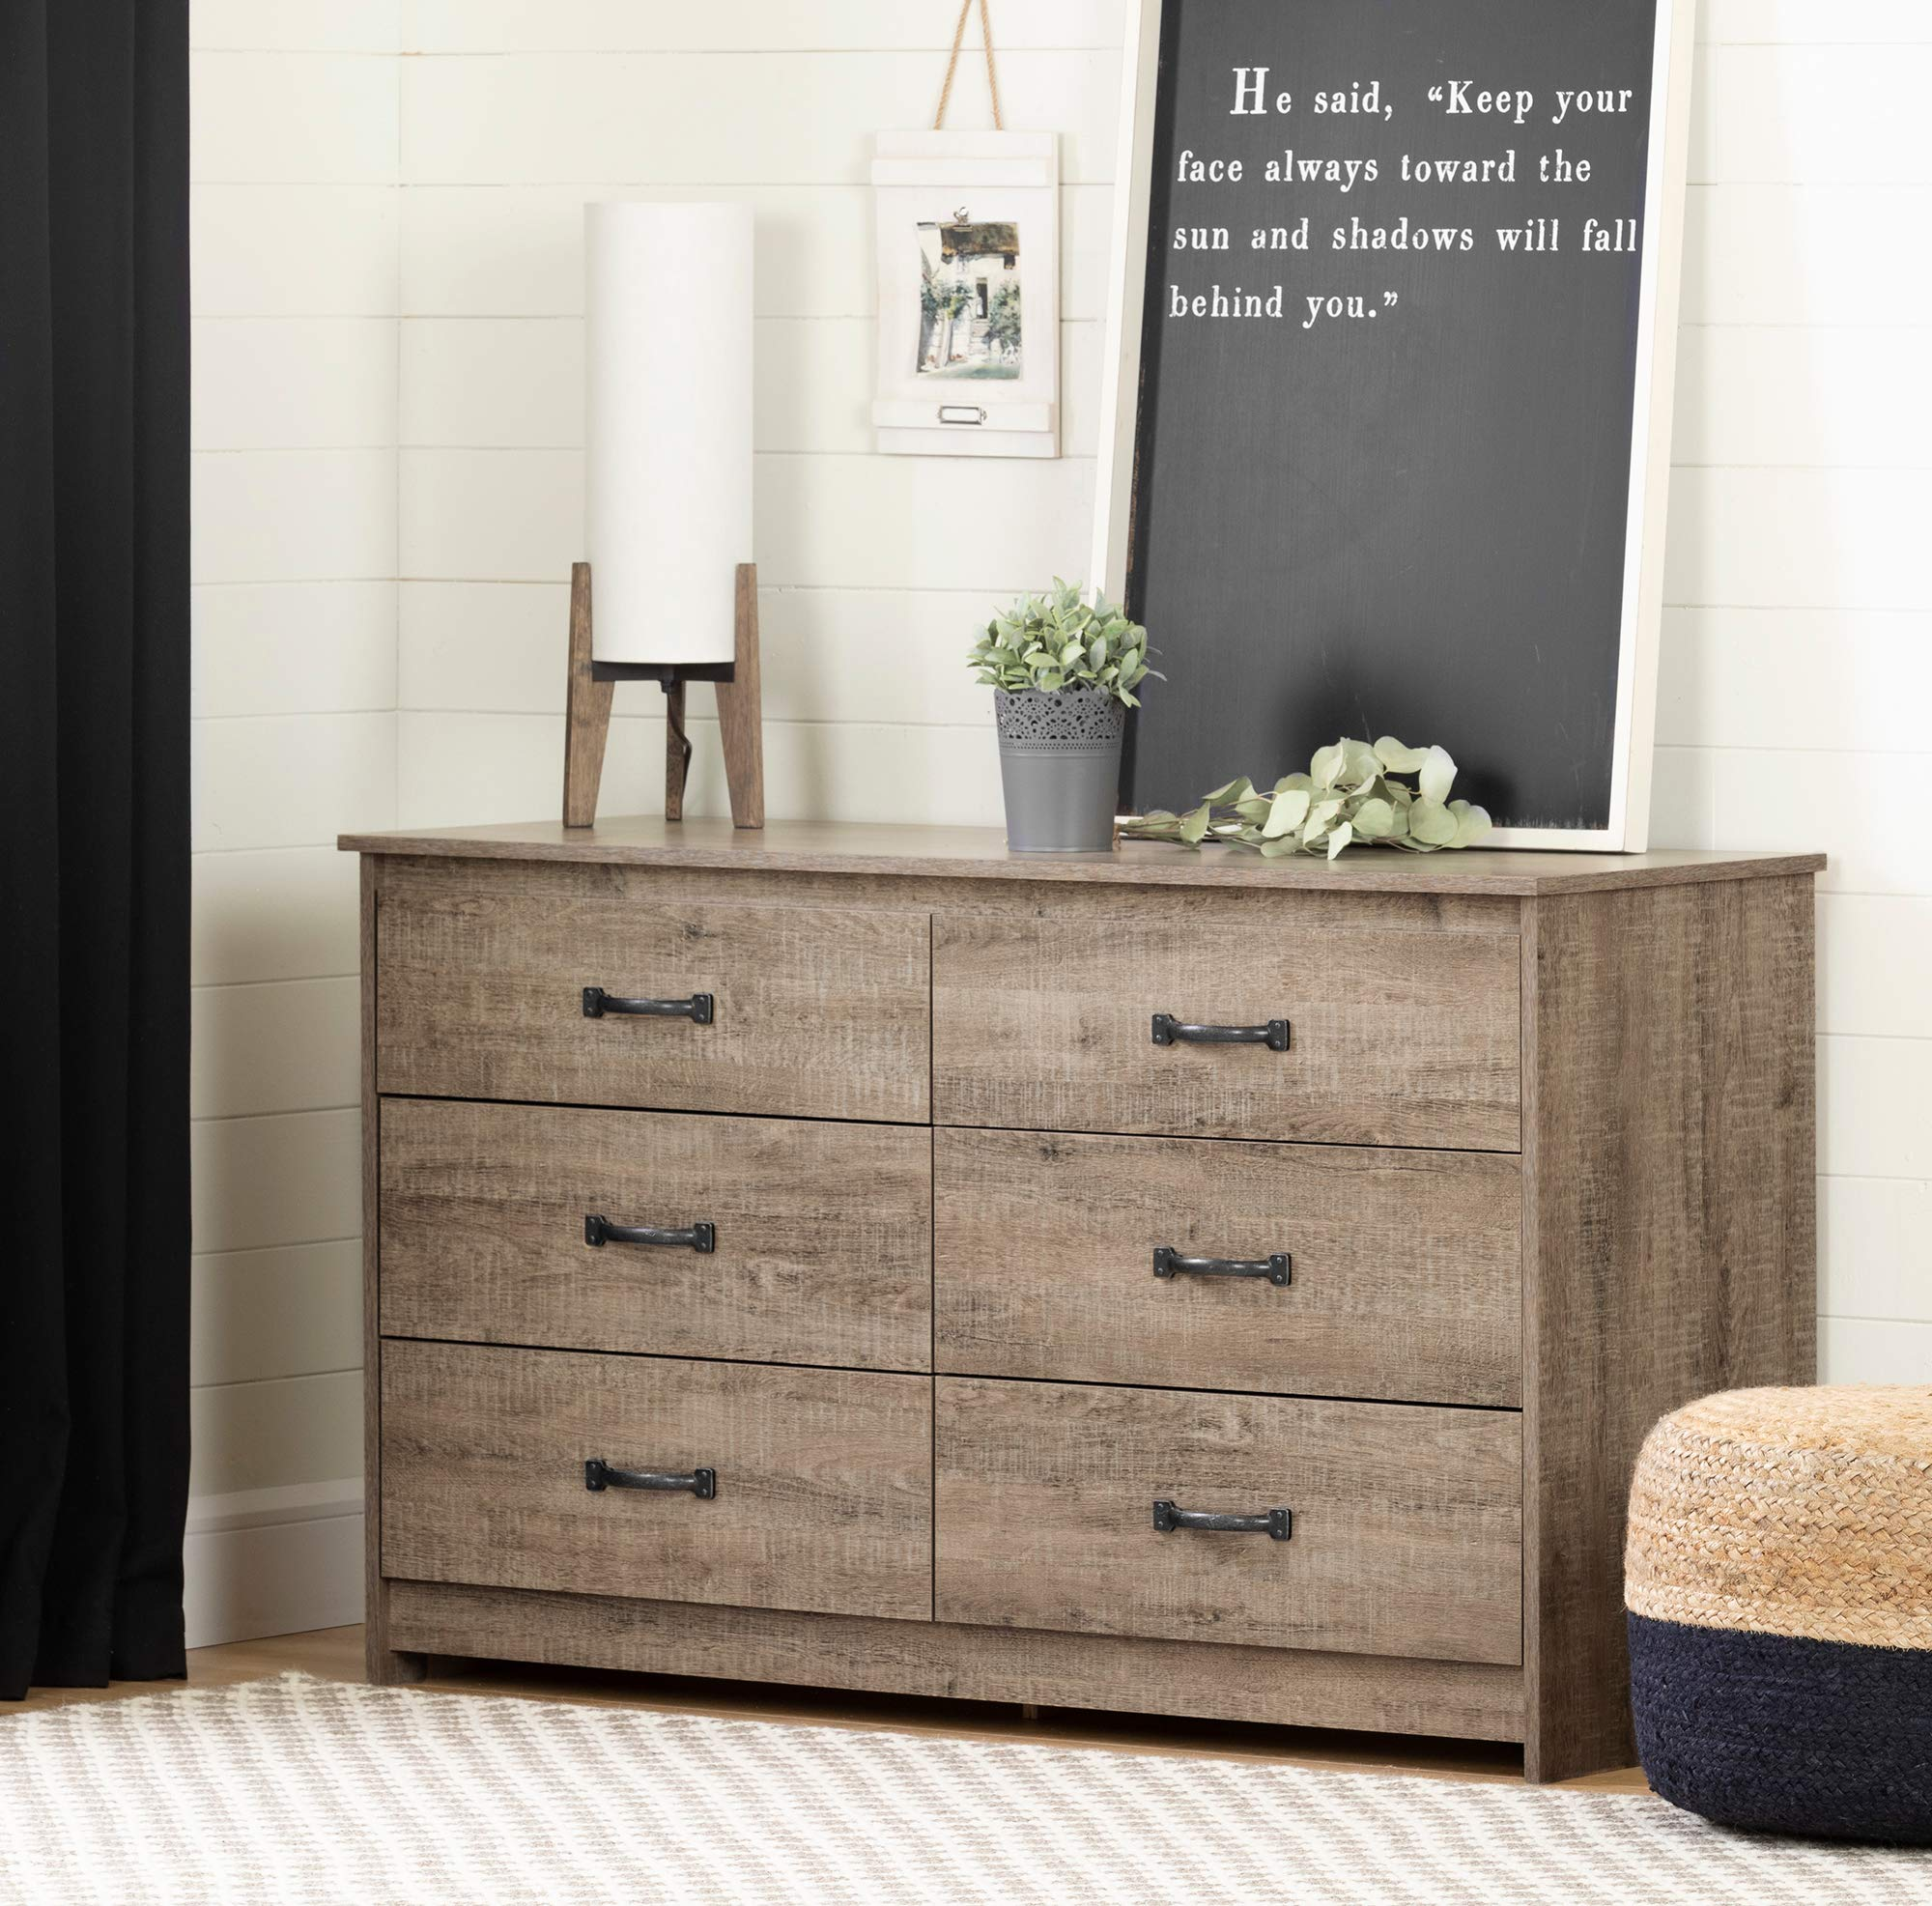 South Shore 12231 Tassio 6-Drawer Double Dresser Weathered Oak by South Shore